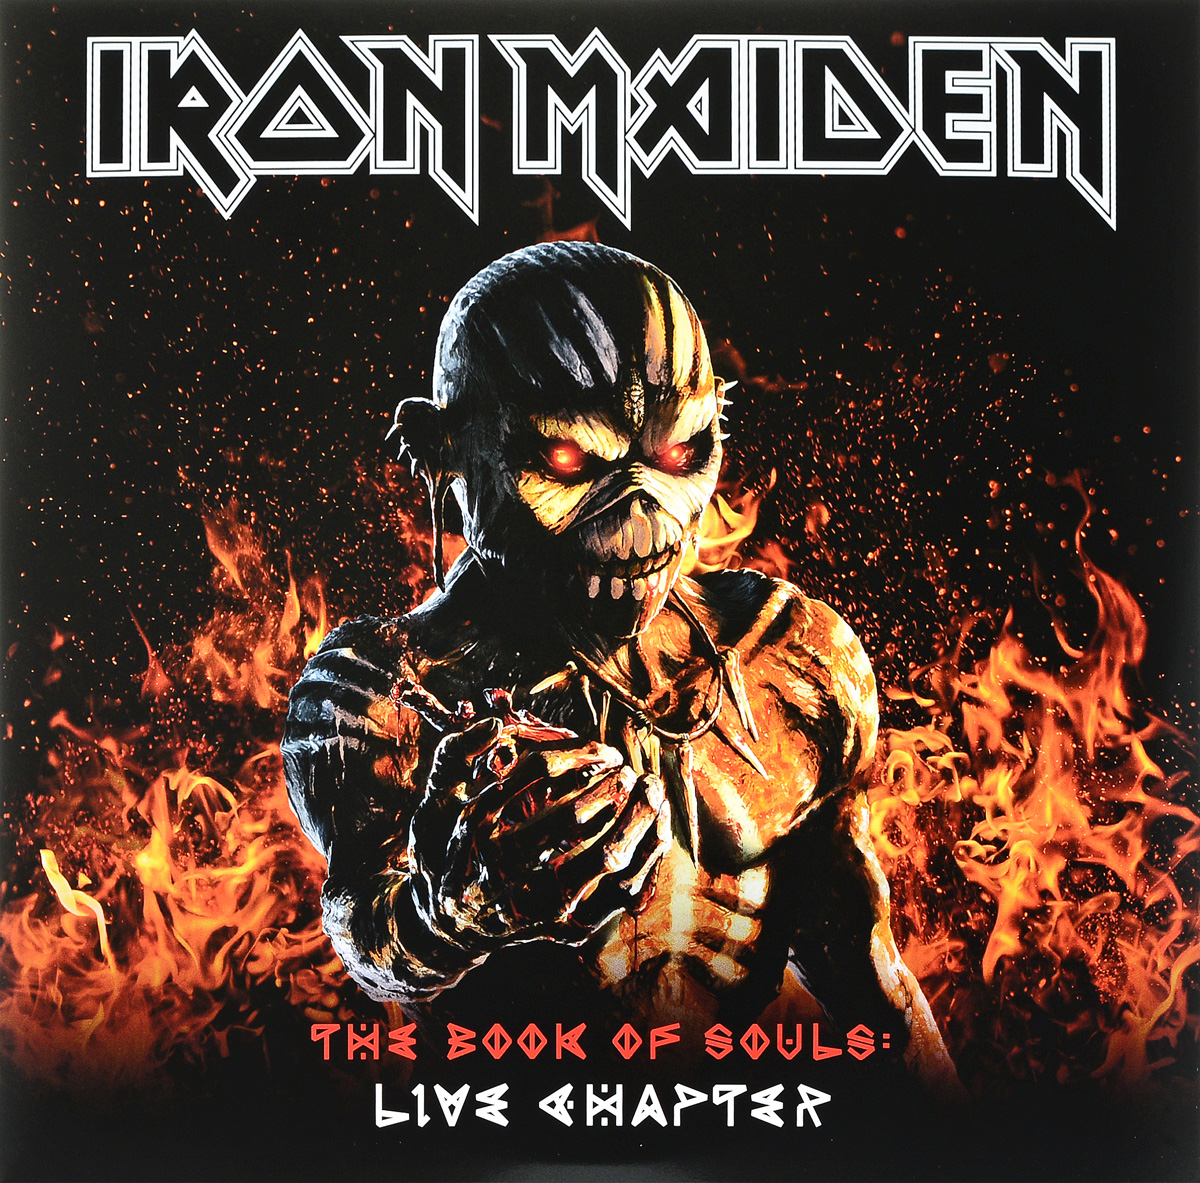 Iron Maiden Iron Maiden. The Book Of Souls: Live Chapter (3 LP) iron maiden iron maiden a matter of life and death 2 lp 180 gr